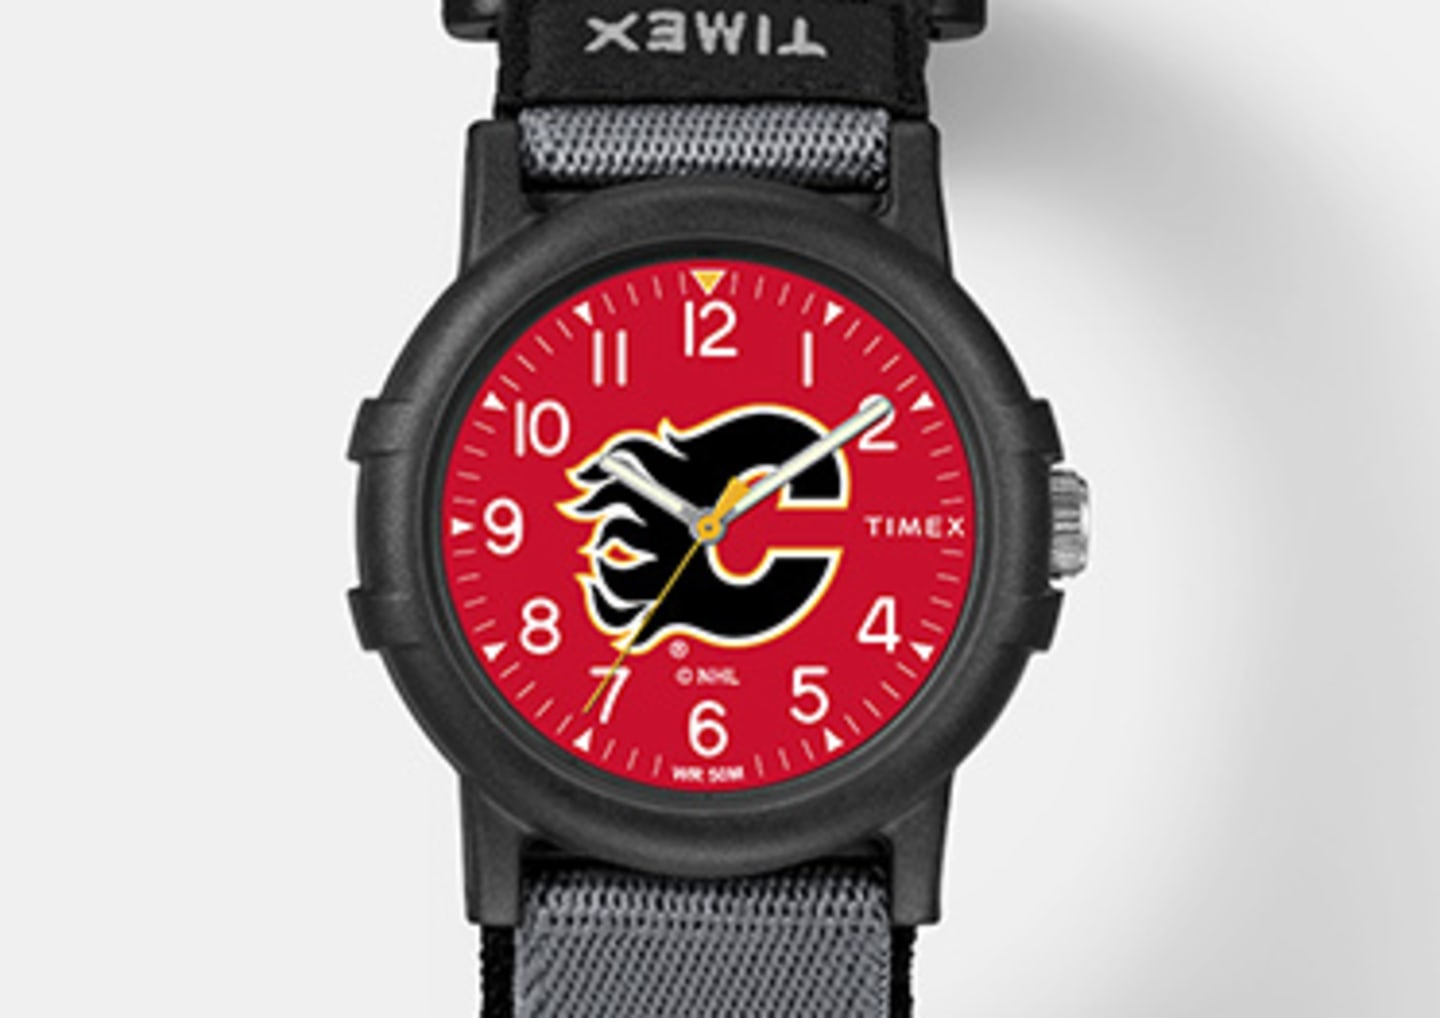 Black Calgary Flames watch with logo in the center emphasizing kid's watches